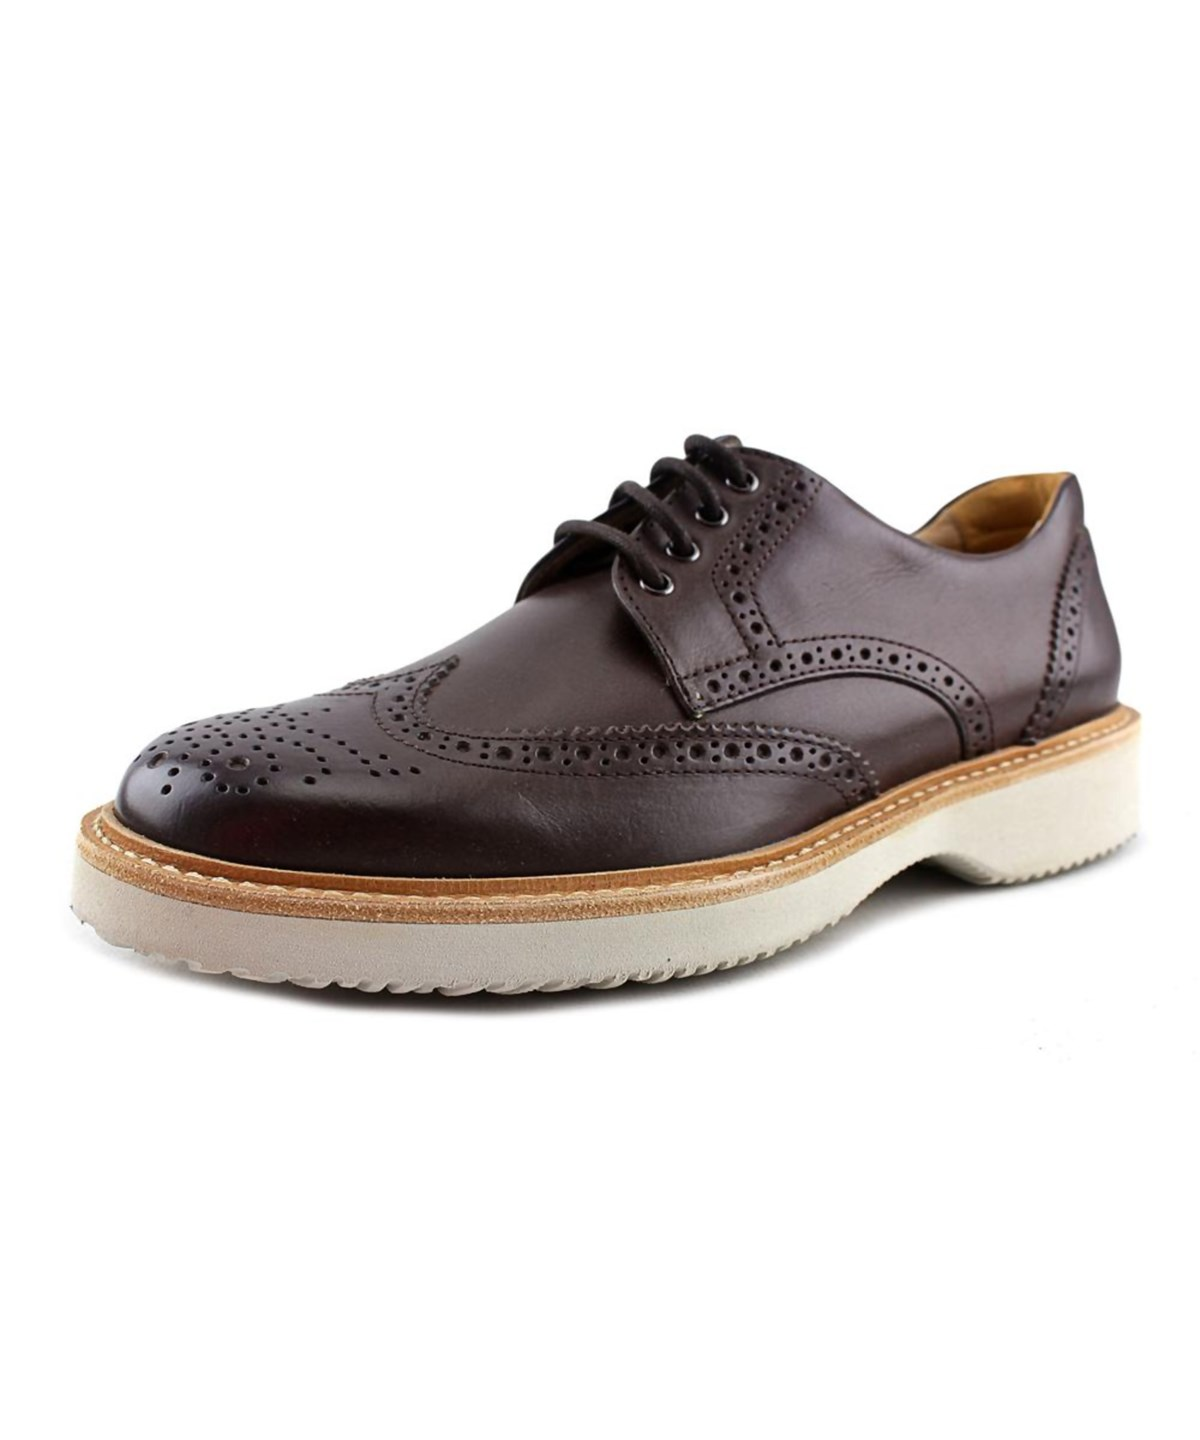 Hogan H217 Route Derby Bucature Men  Wingtip Toe Leather Brown Oxford